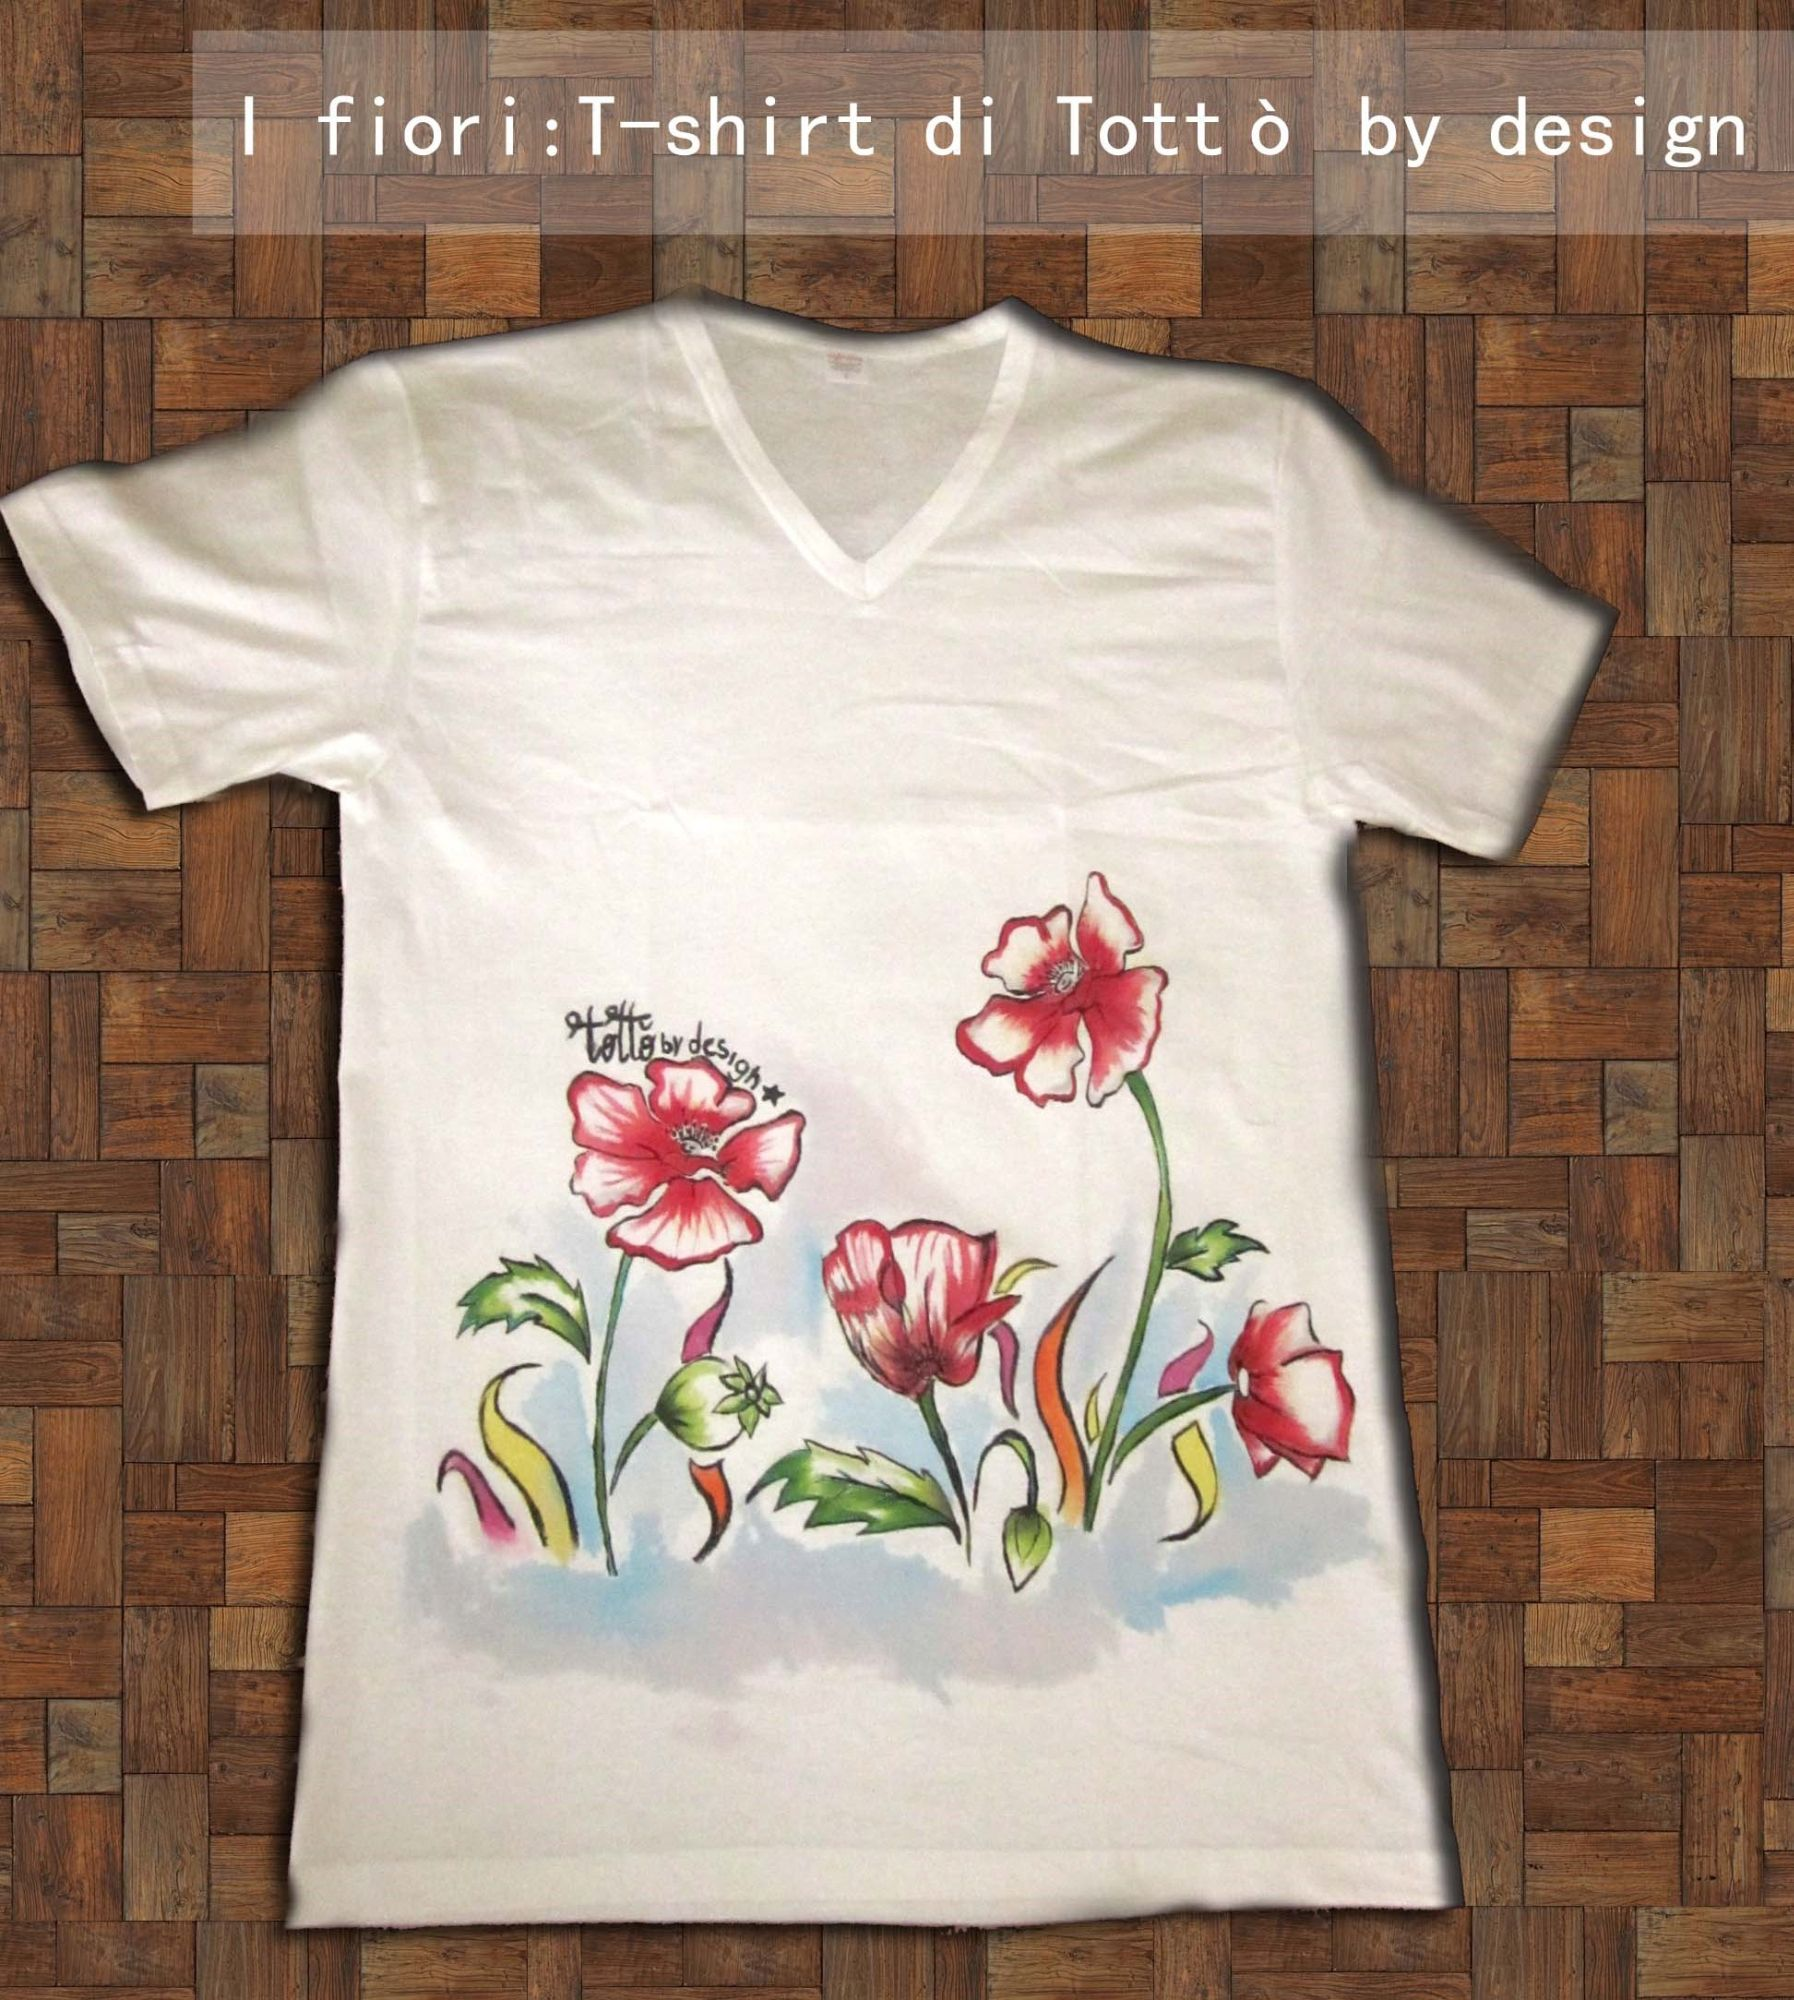 Tottò by design t-shirt dipinte a mano